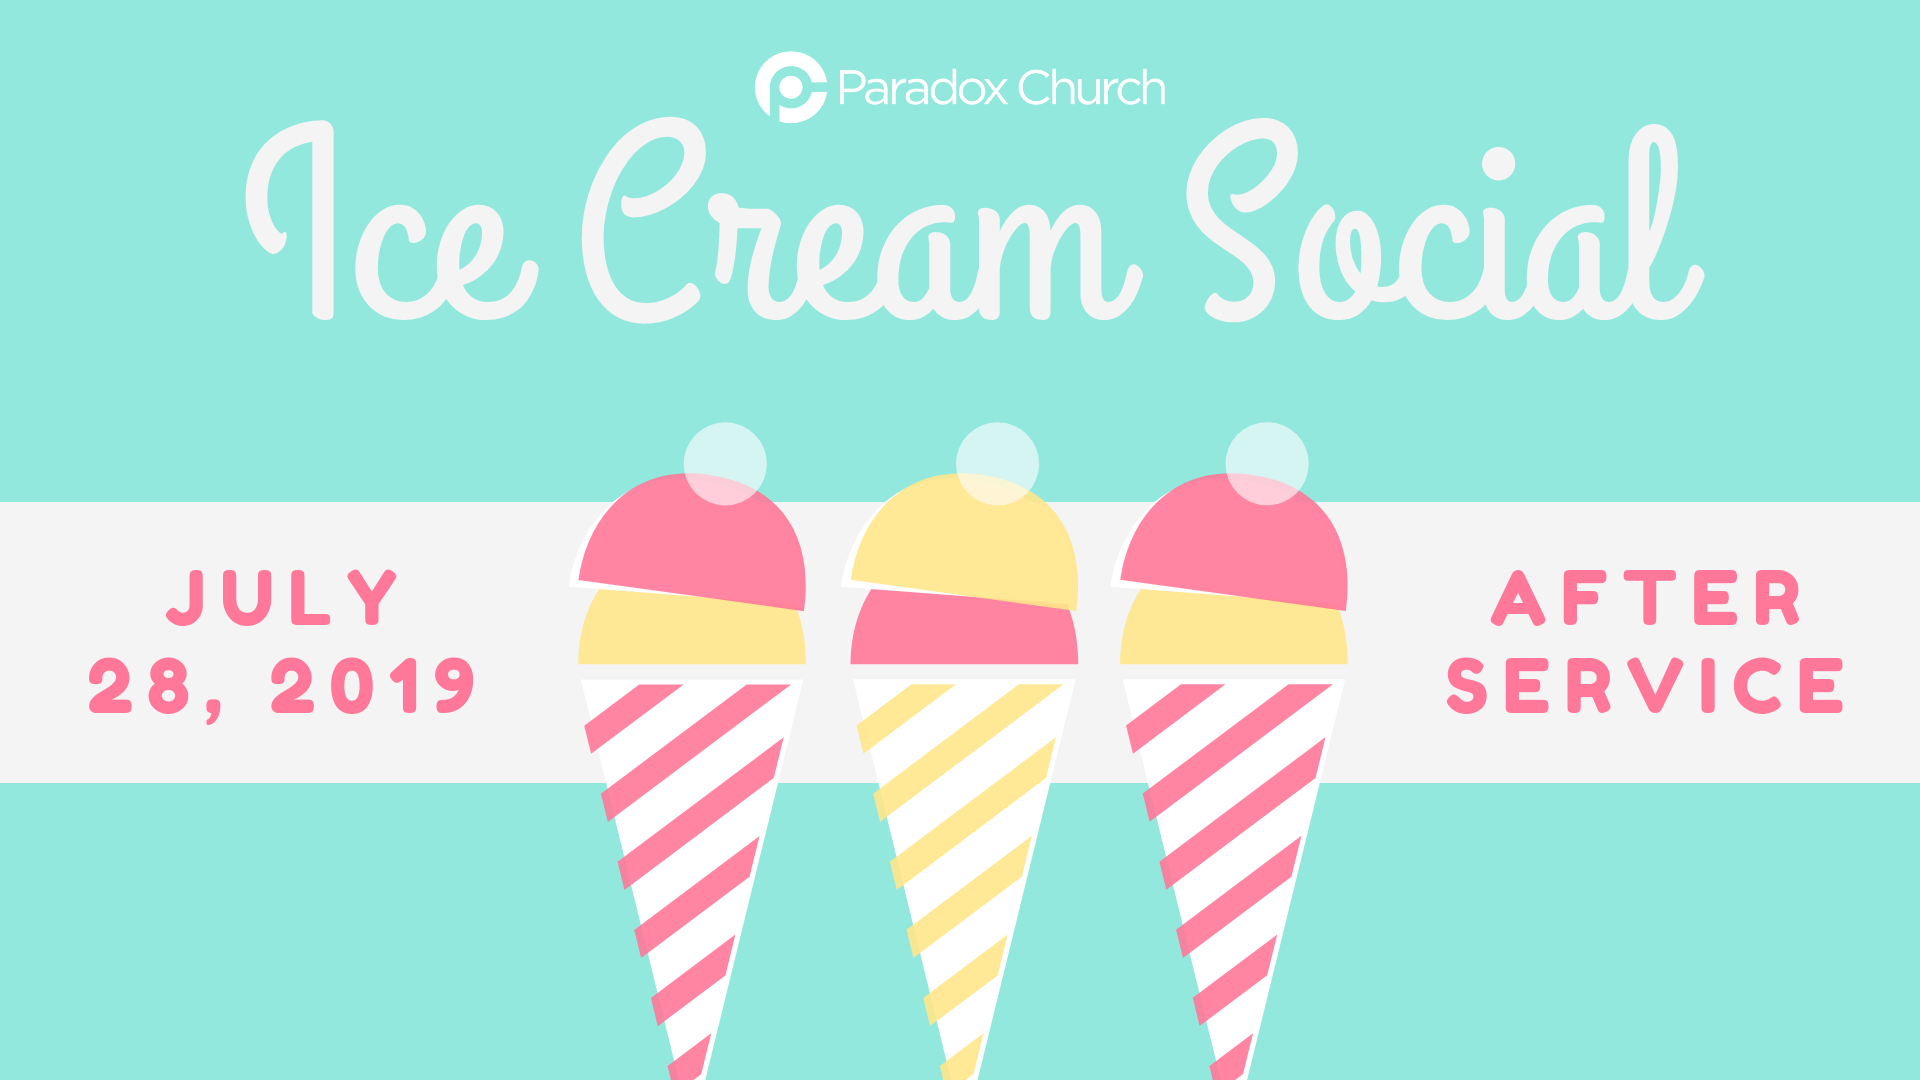 Ice Cream Social - Announcement.png